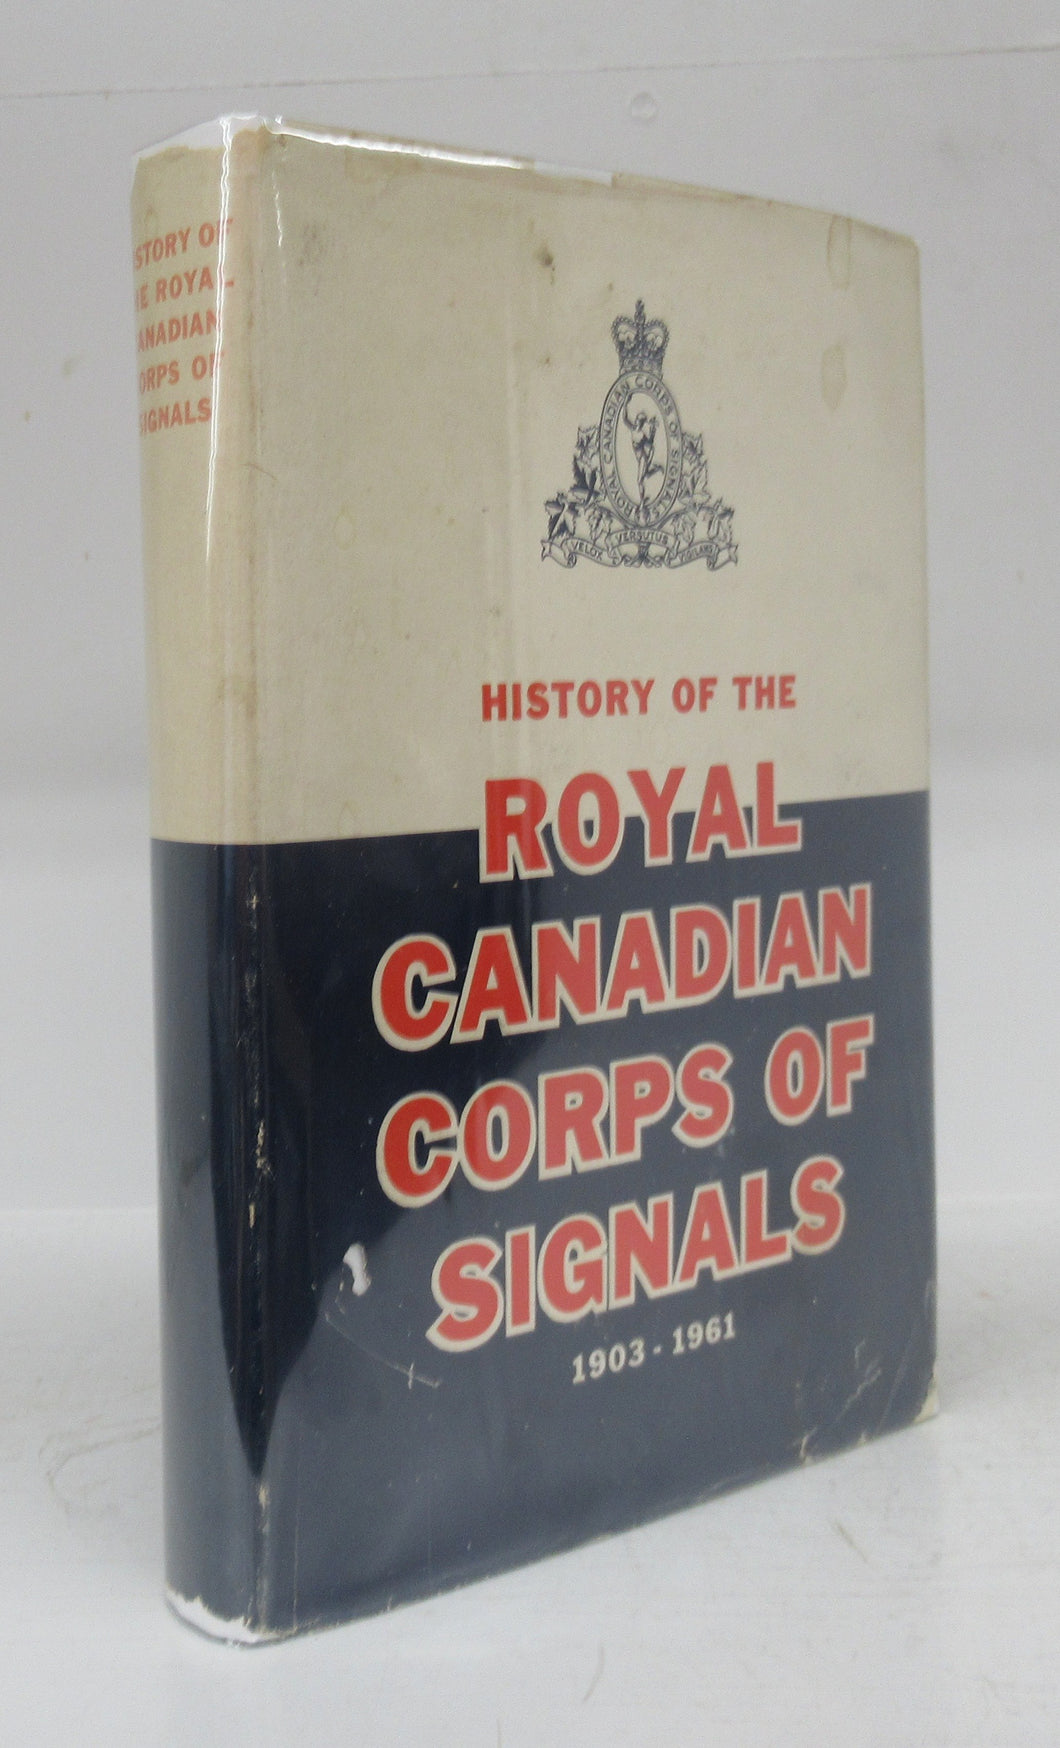 History of the Royal Canadian Corps of Signals 1903-1961